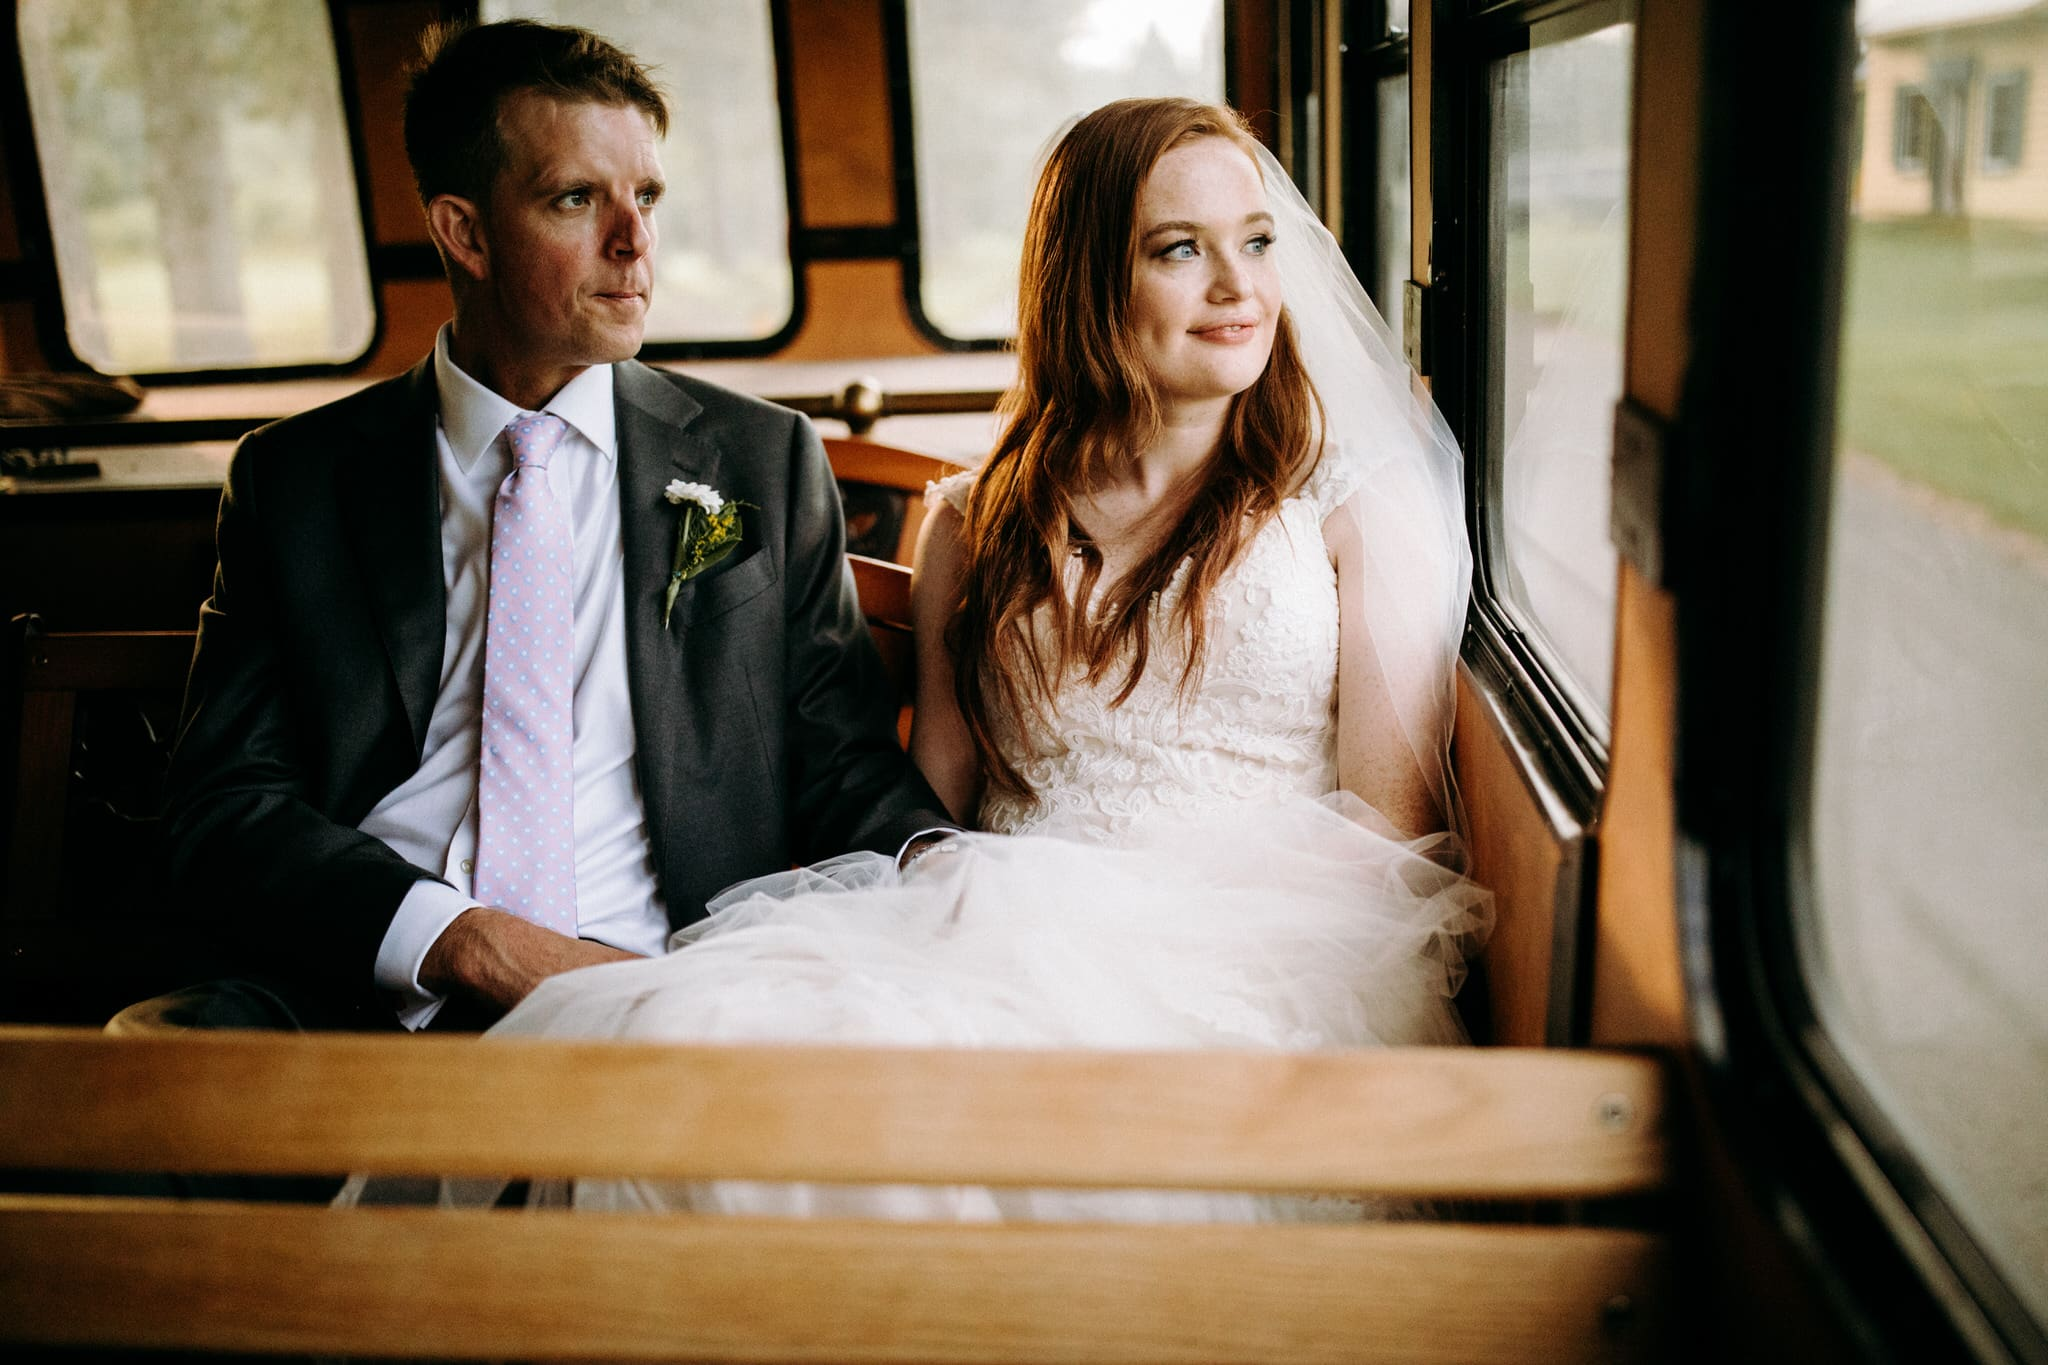 Restaurant wedding at Maison 1890 - Bride and Groom in trolley car - Wedding Photographer Brent Calis